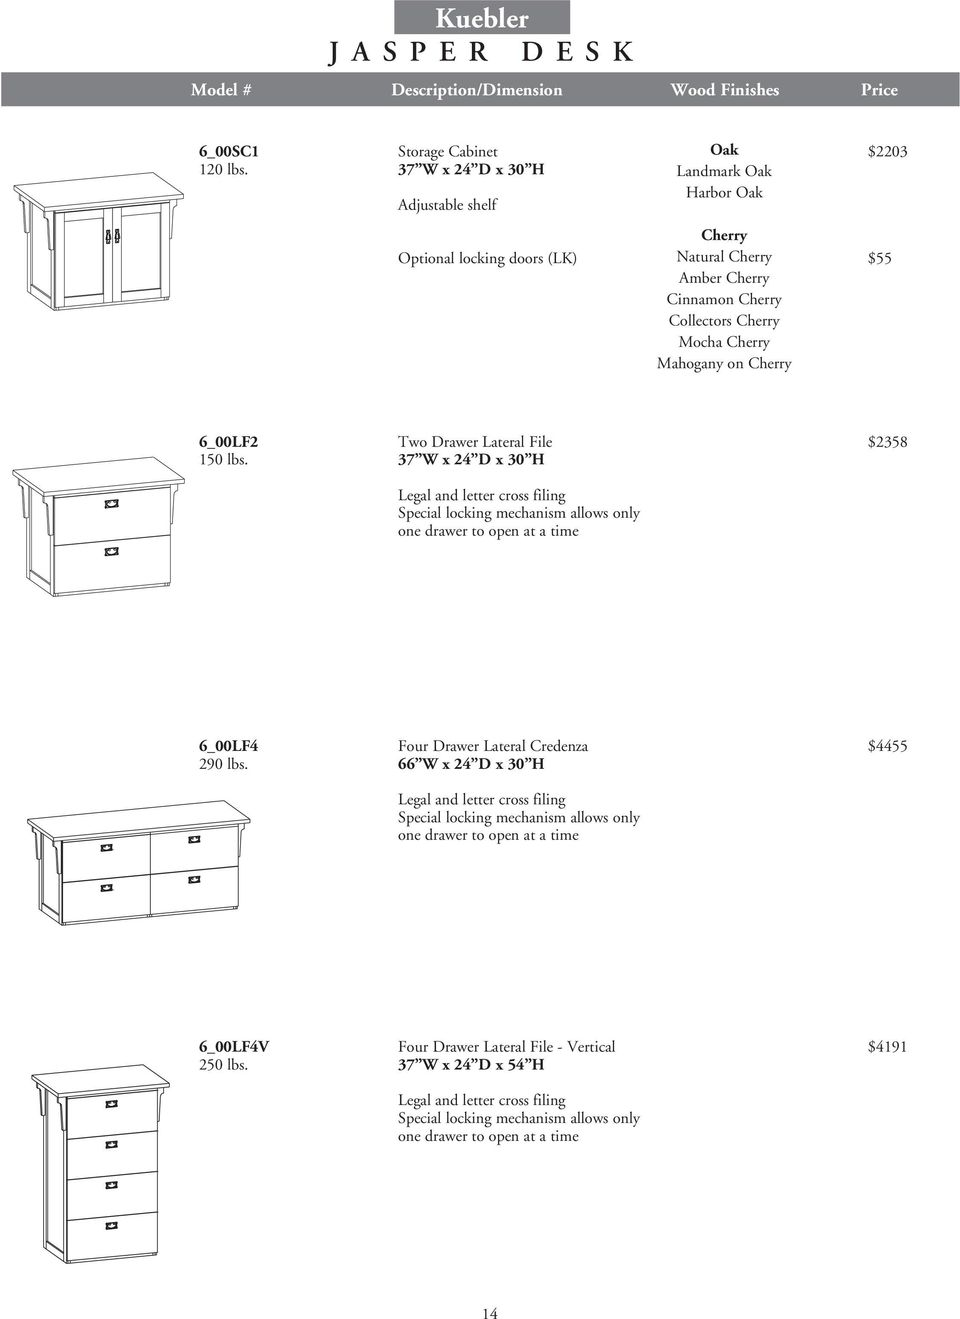 37 W x 24 D x 30 H Legal and letter cross filing Special locking mechanism allows only one drawer to open at a time 6_00LF4 Four Drawer Lateral Credenza $4455 290